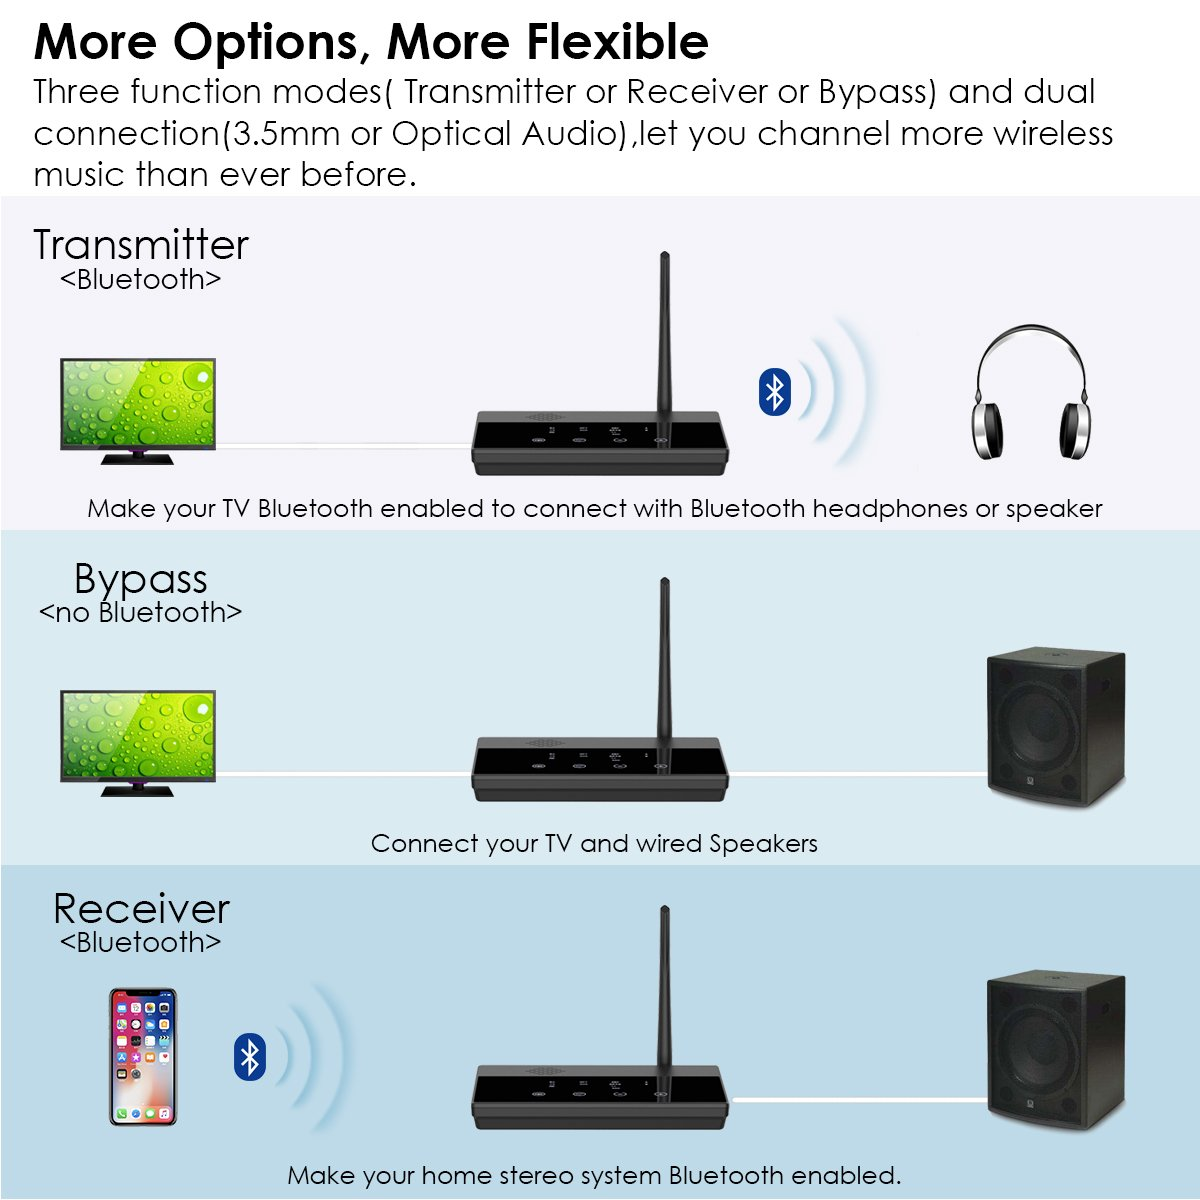 Besign Long Range Be Rtx Bluetooth Audio Adapter Wiring Diagrams Of Tv And Home Stereo Components With Av Surround Receiver Wireless Transmitter For System Aptx Low Latency 35mm